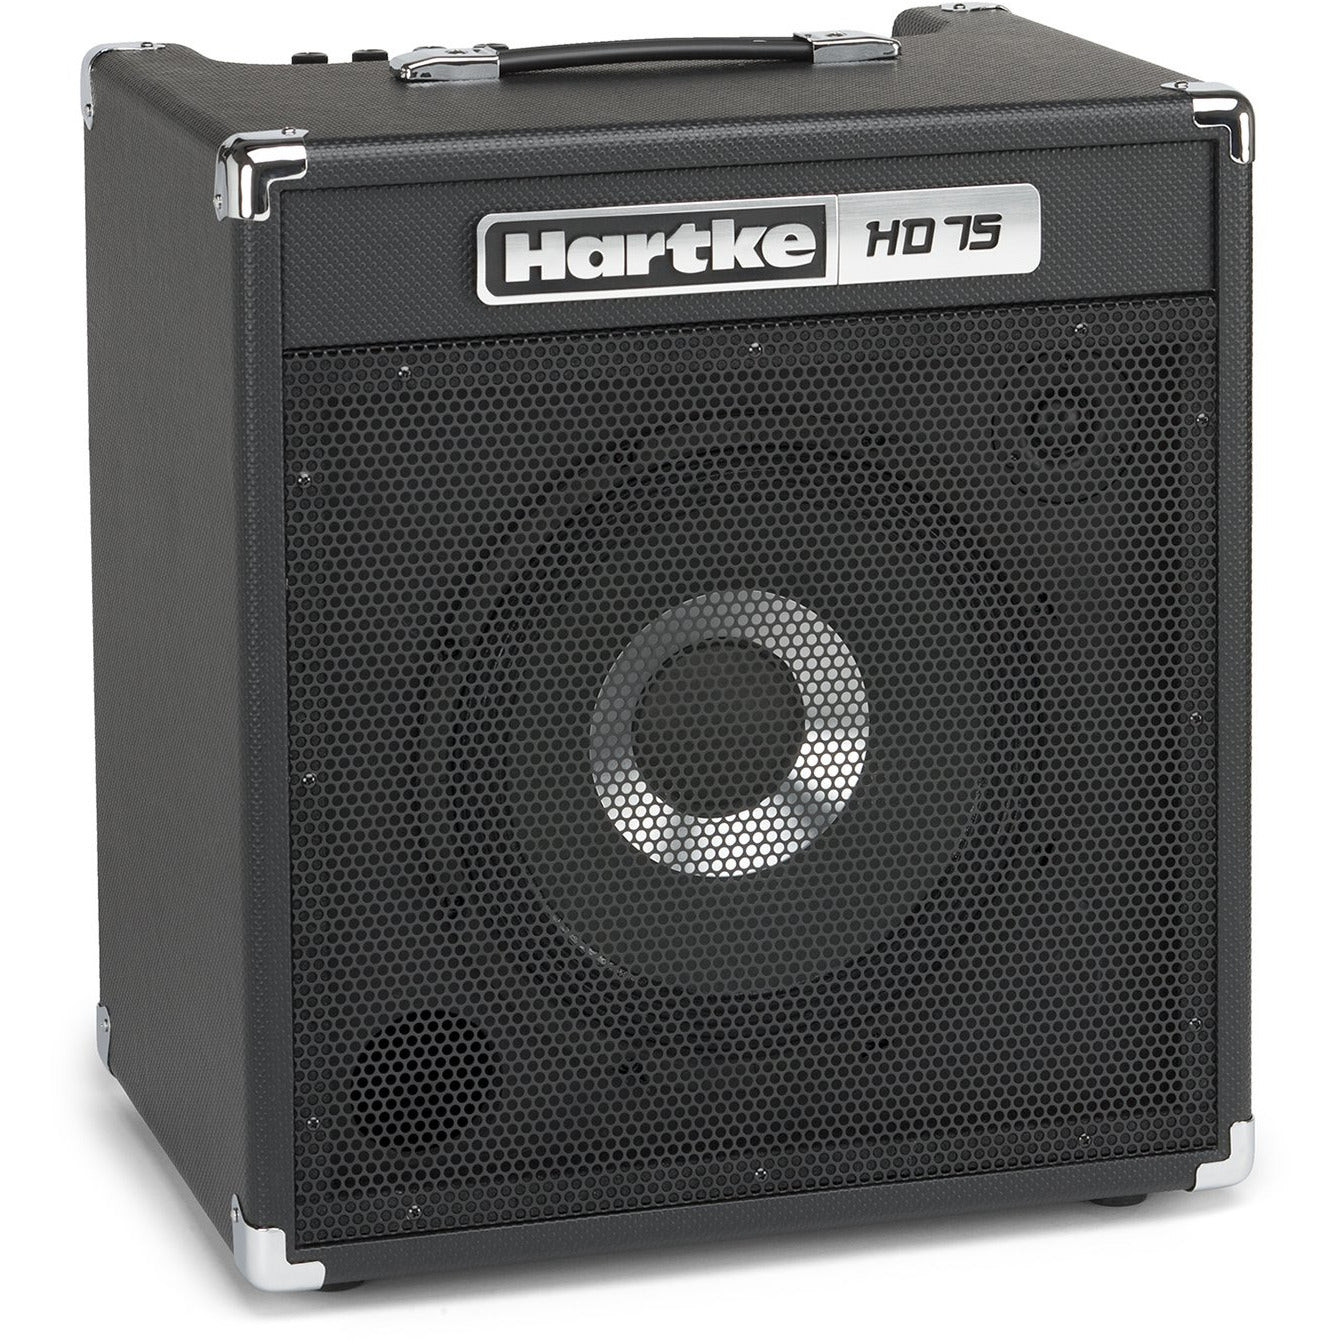 Hartke HD75 75 watts,12  HyDrive paper and aluminum cone driver